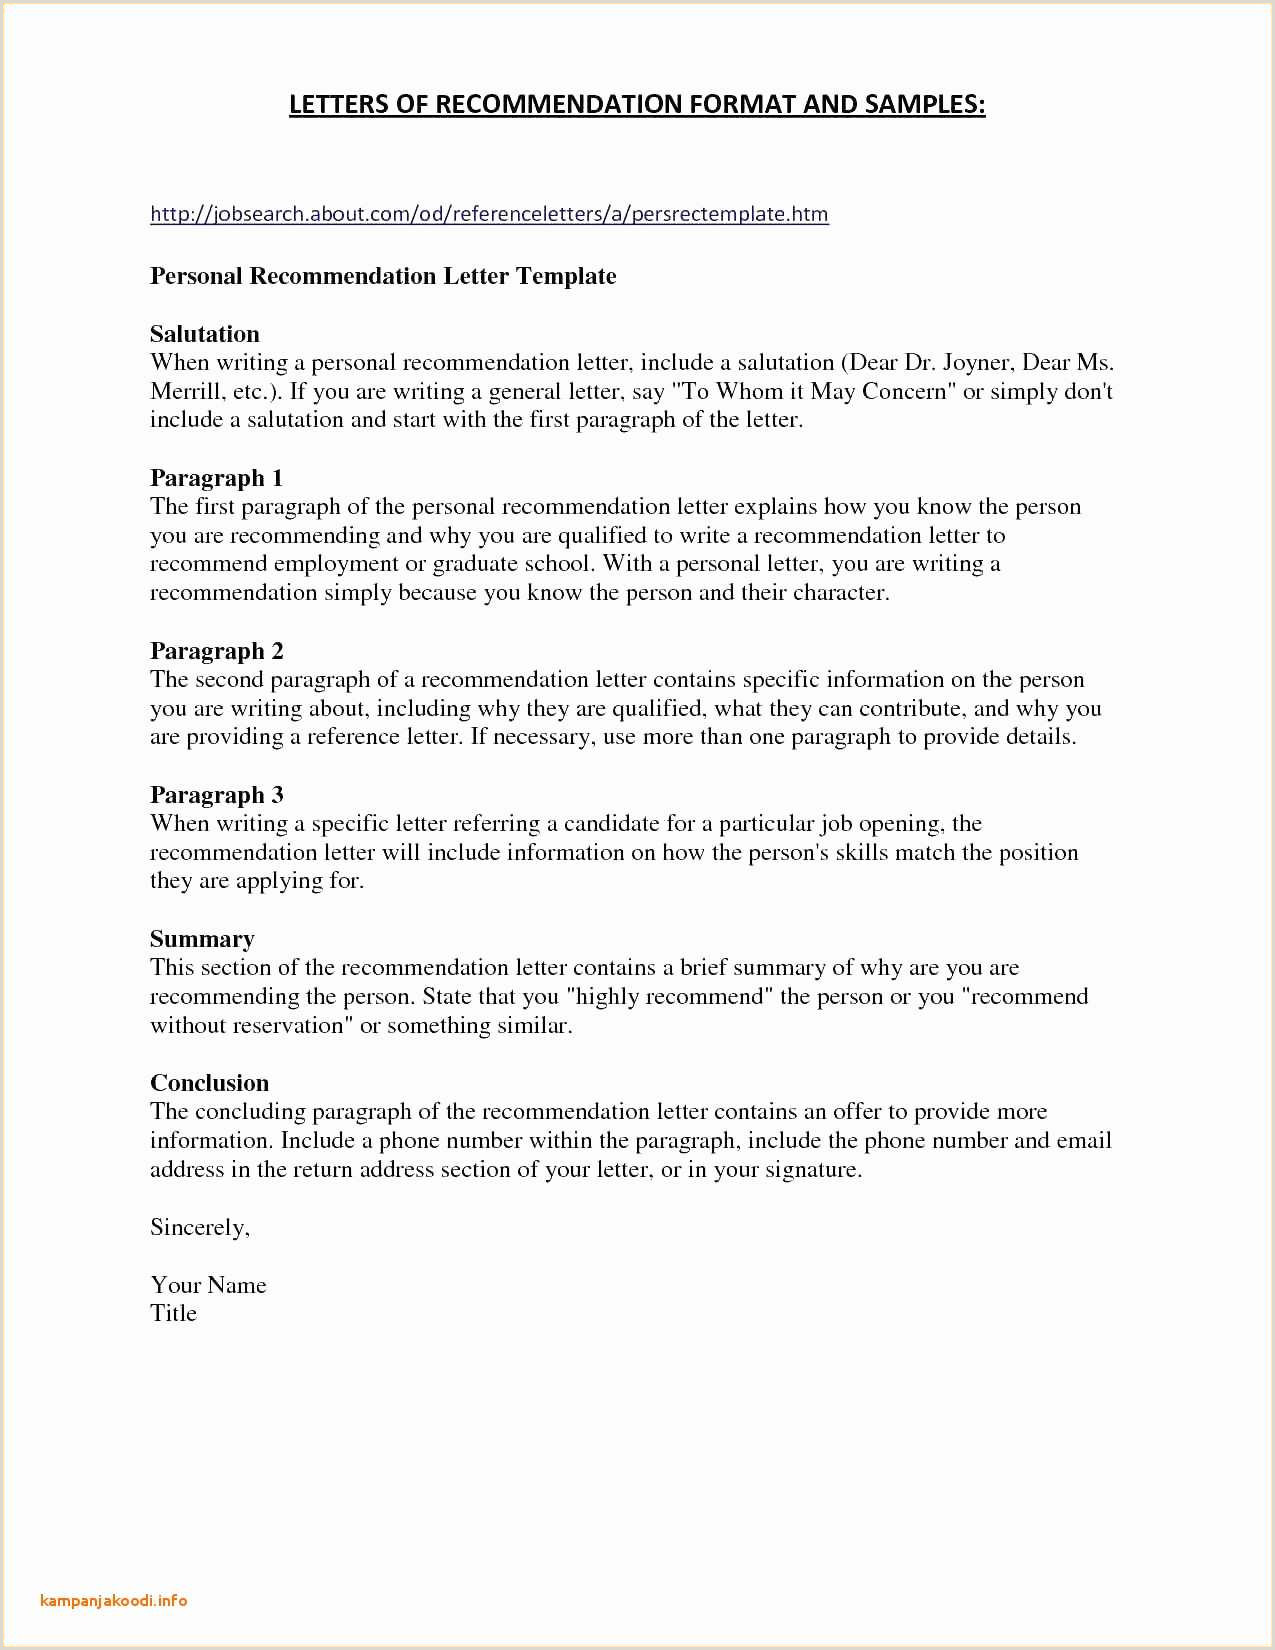 Cv Sample for Receptionist Job Resume Cover Letter for Receptionist Position Best Cover